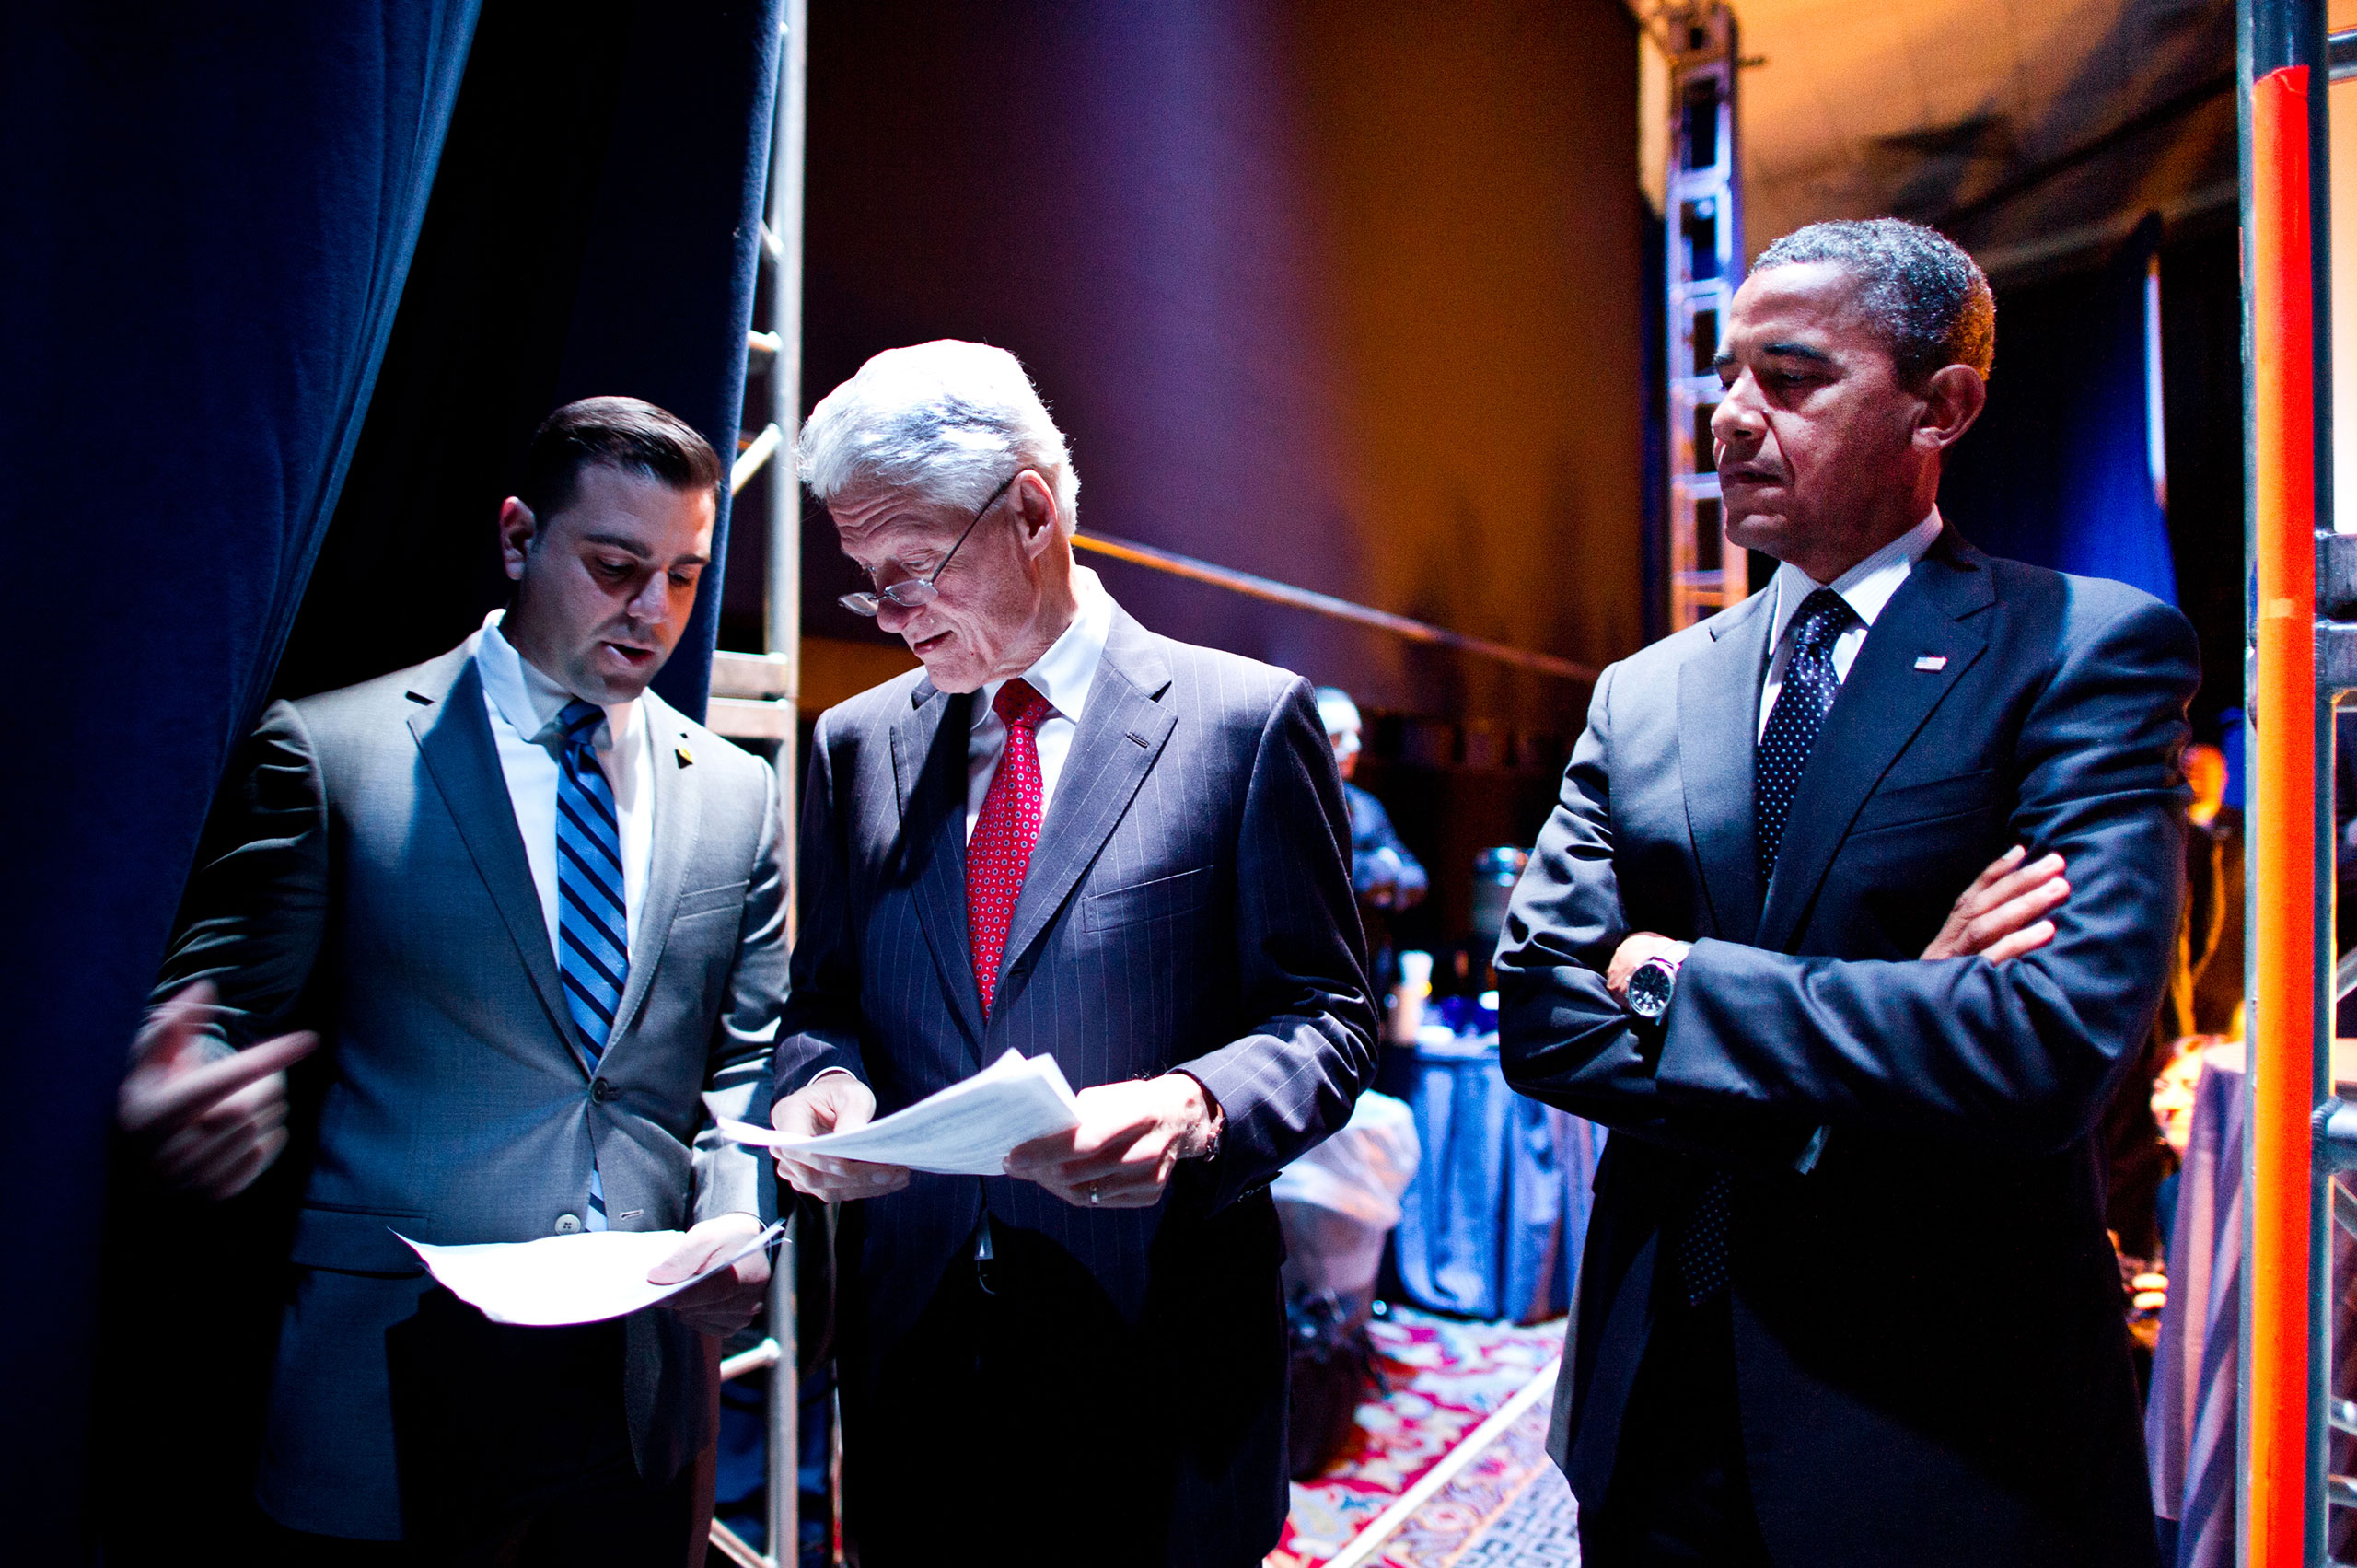 Presidents Bill Clinton and Barack Obama behind the scenes at the 2012 Democratic Convention.